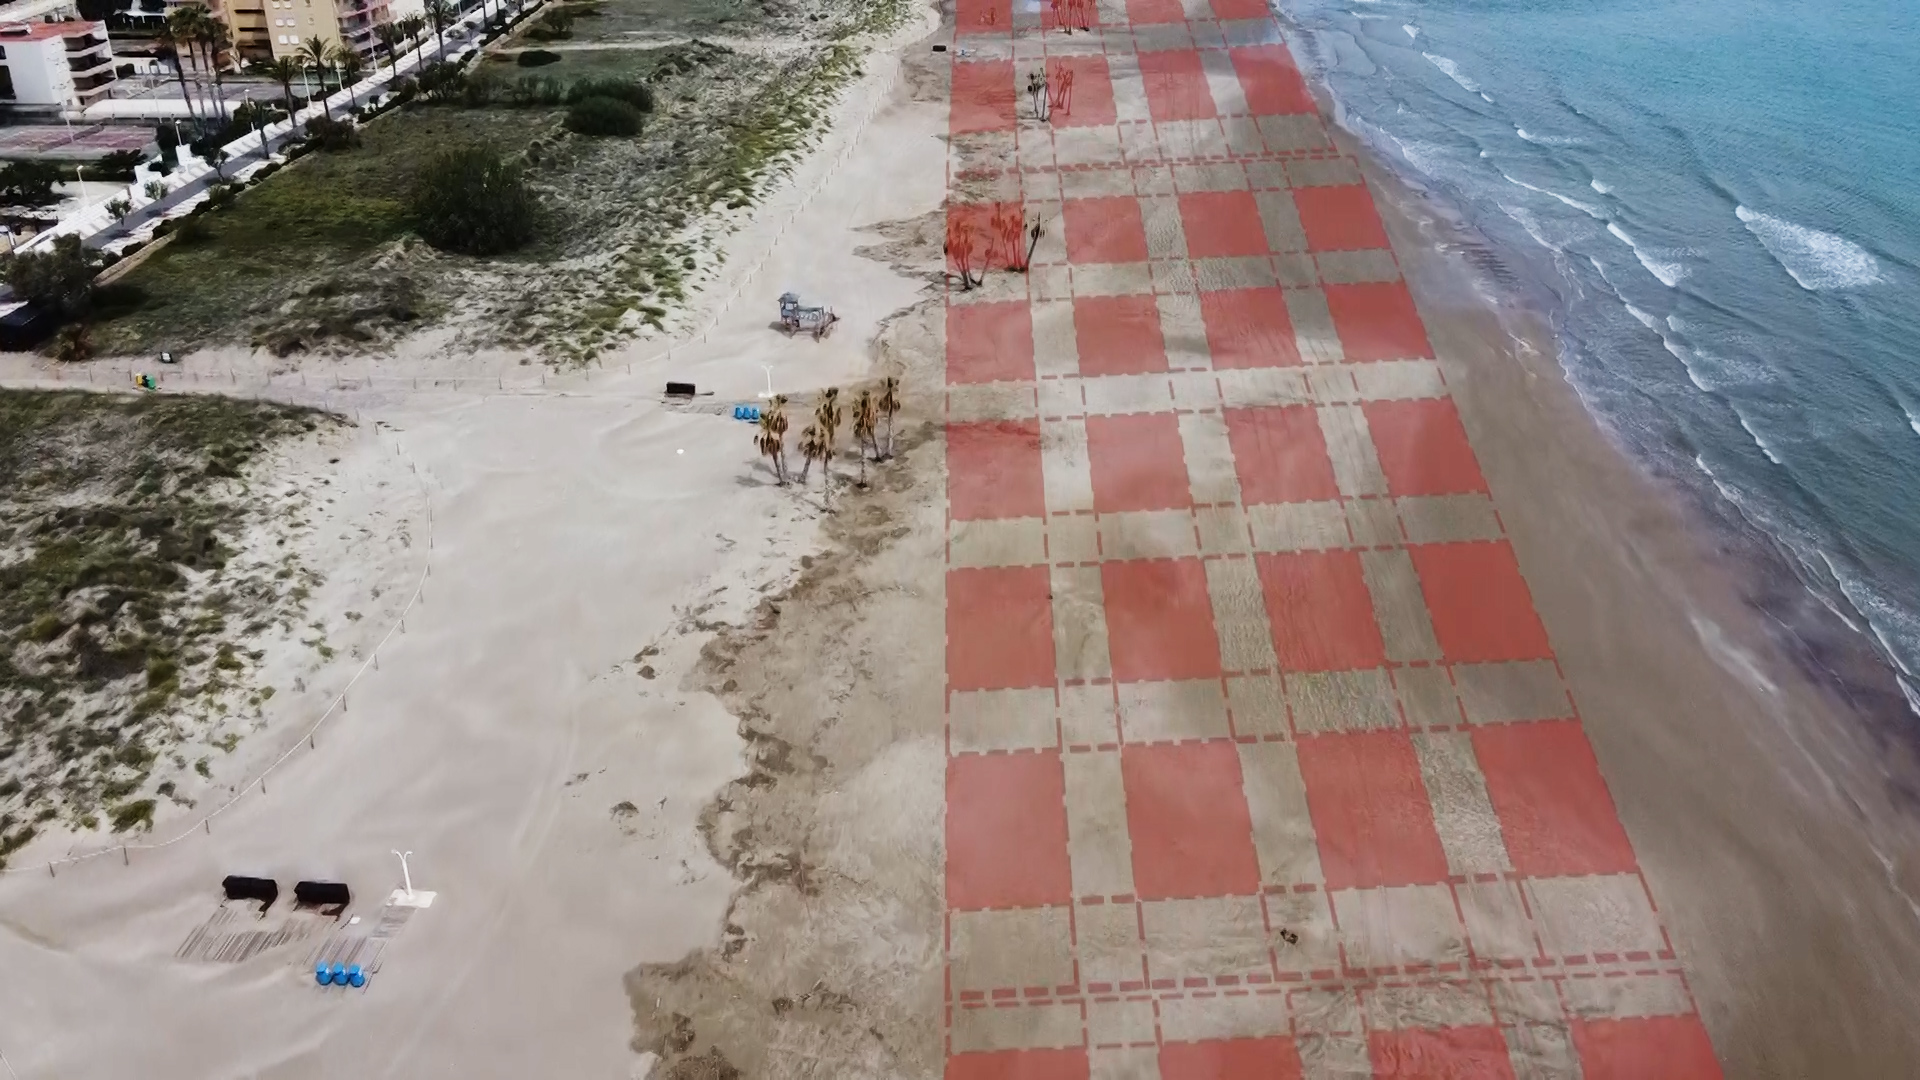 This rendering shows how authorities will spread out nets in Canet d'en Berenguer.